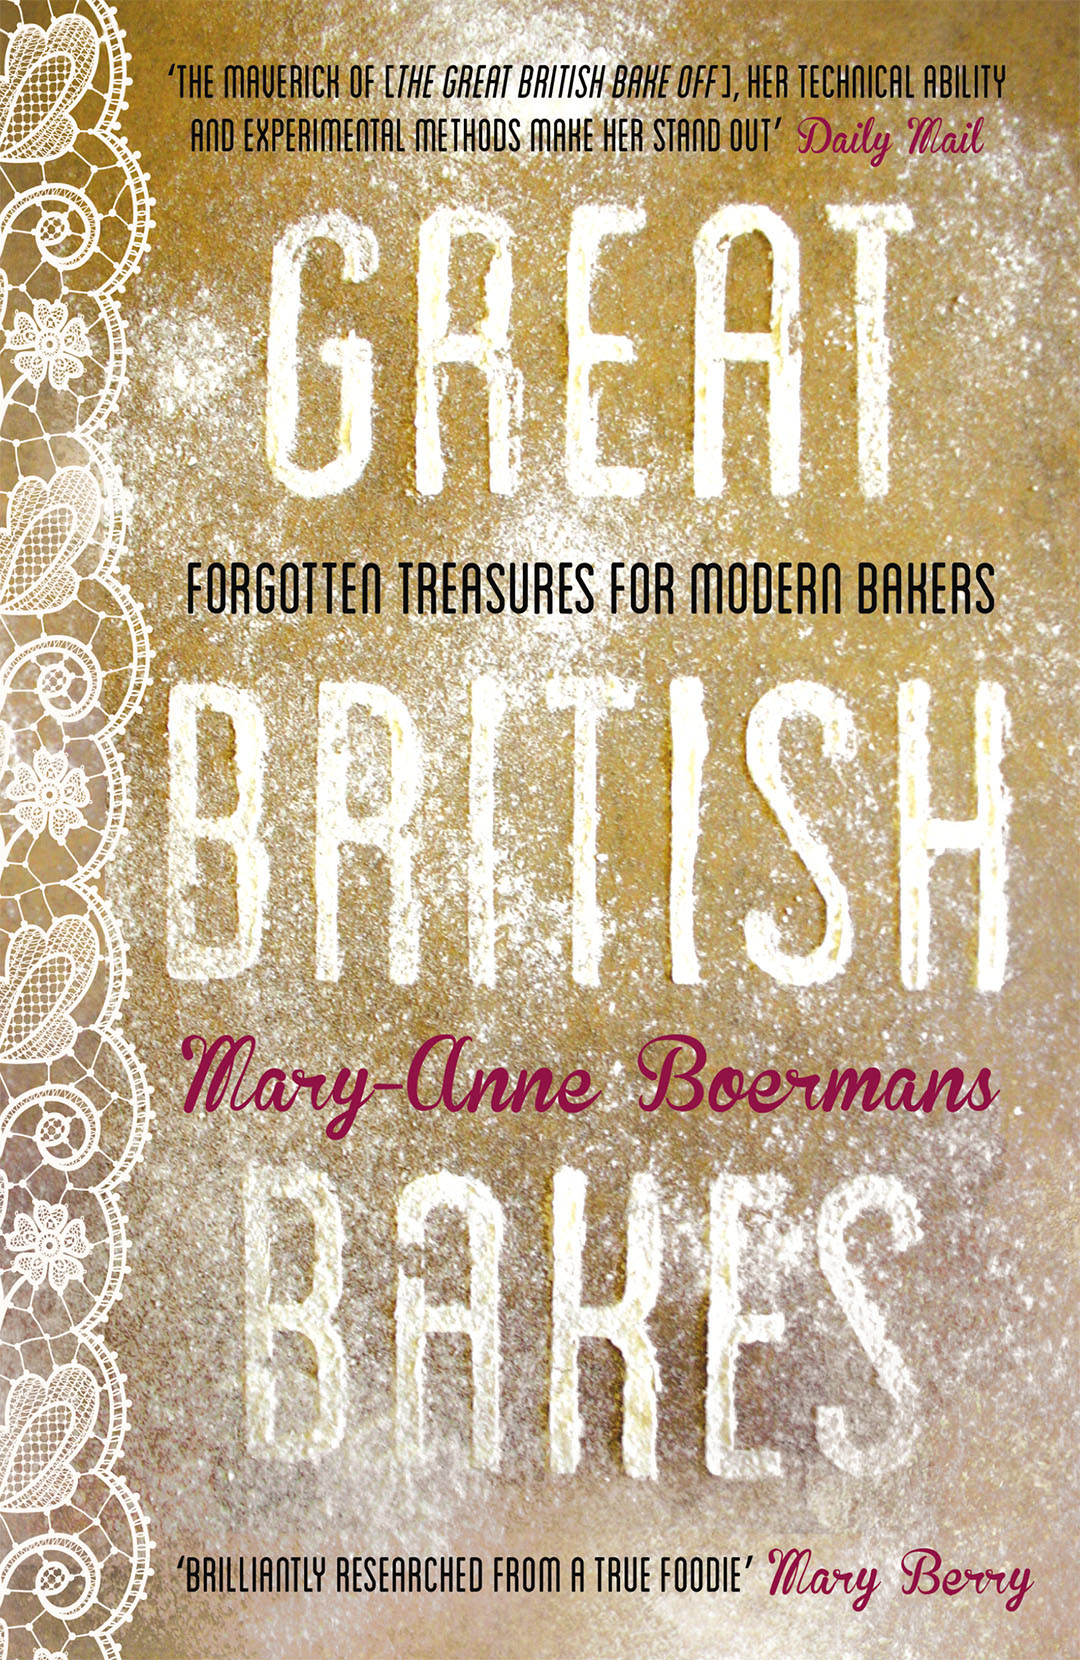 mary anne boerman great british bakes